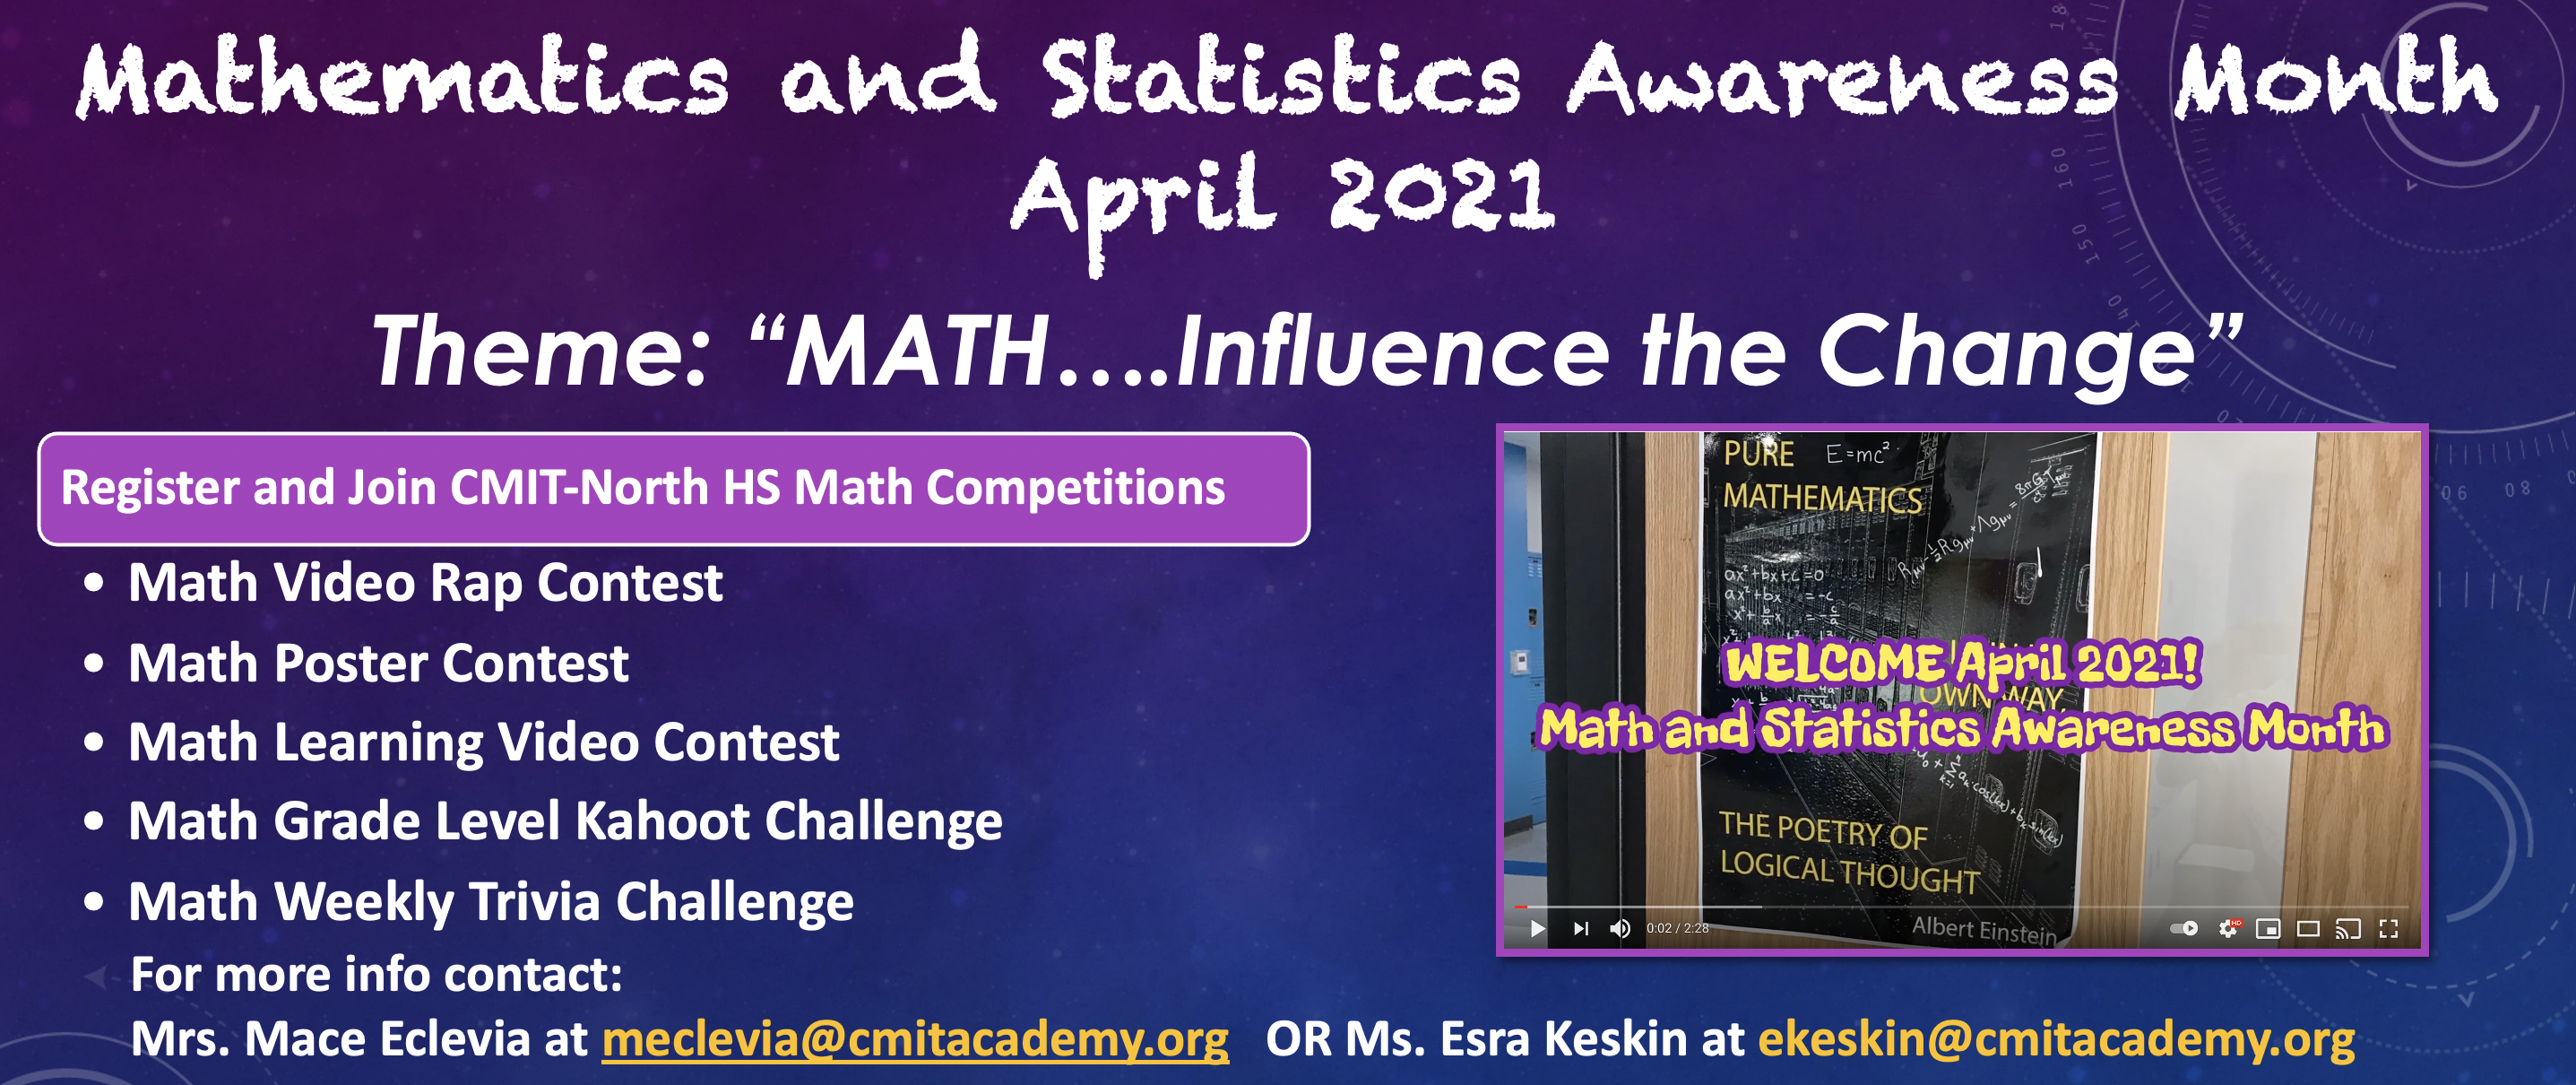 Mathematics and Statistics Awareness Month  April 2021